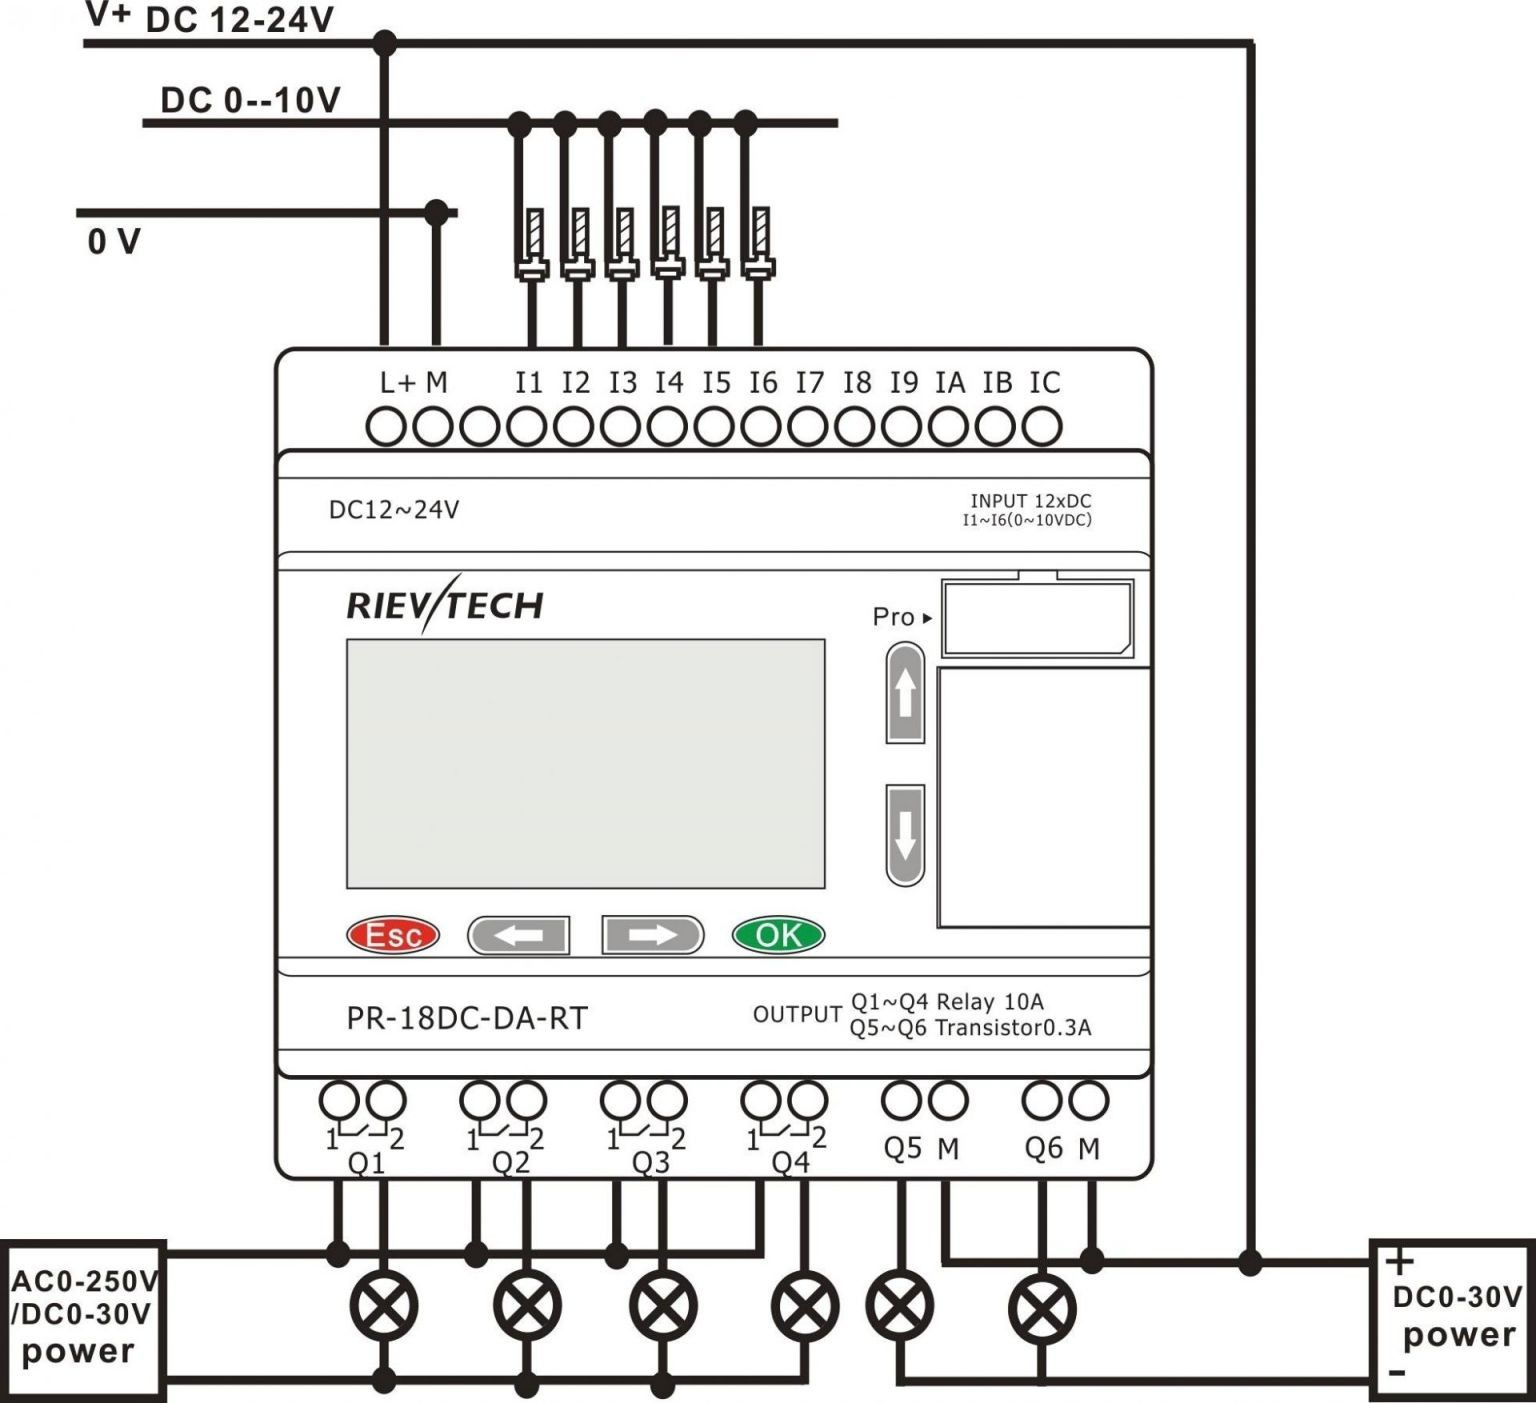 Awesome Idec Relay Wiring Diagram   Networking cables, Power, Diagram